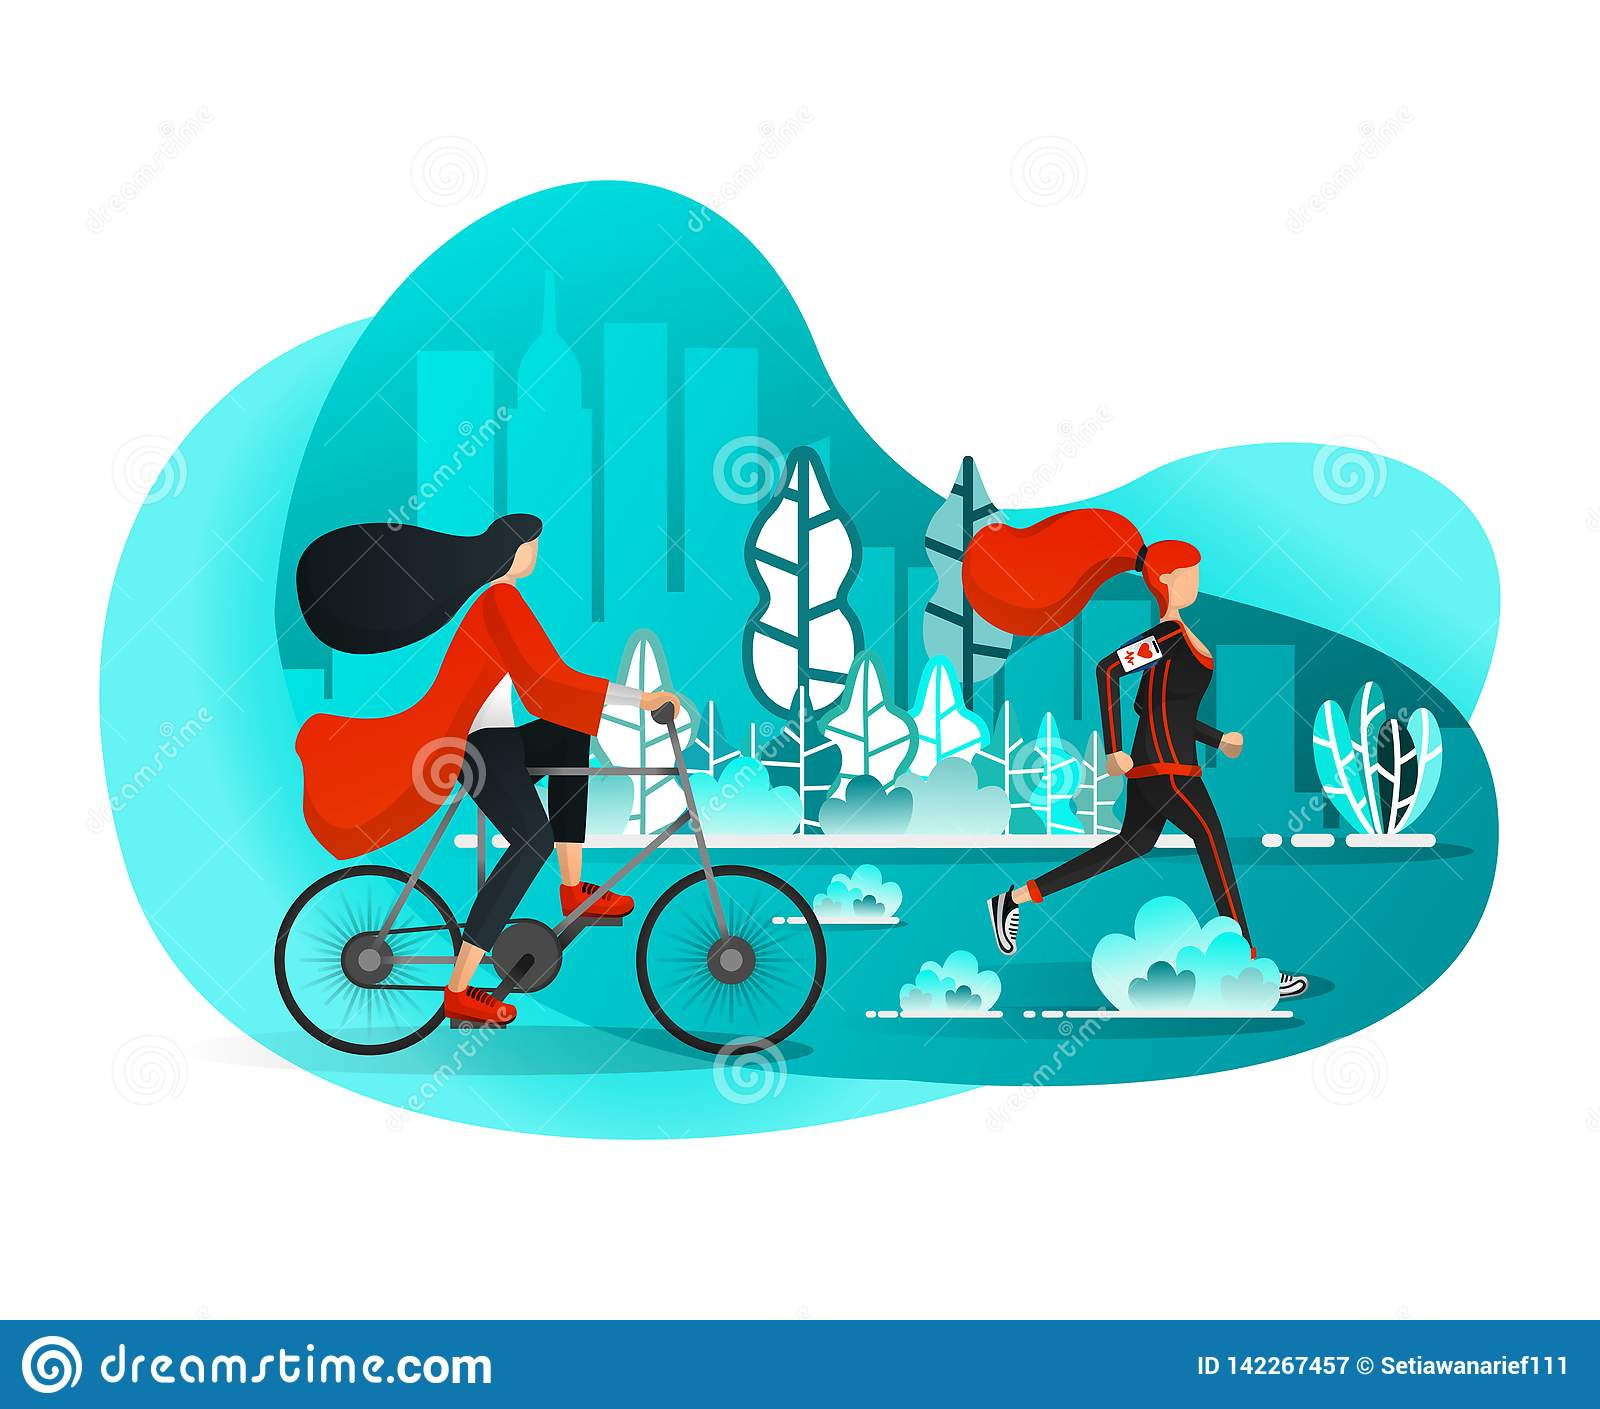 Girls Enjoying Leisure on Summer Mornings With Sports Activities in City Central Park such Running & Biking. Flat Cartoon Style. V